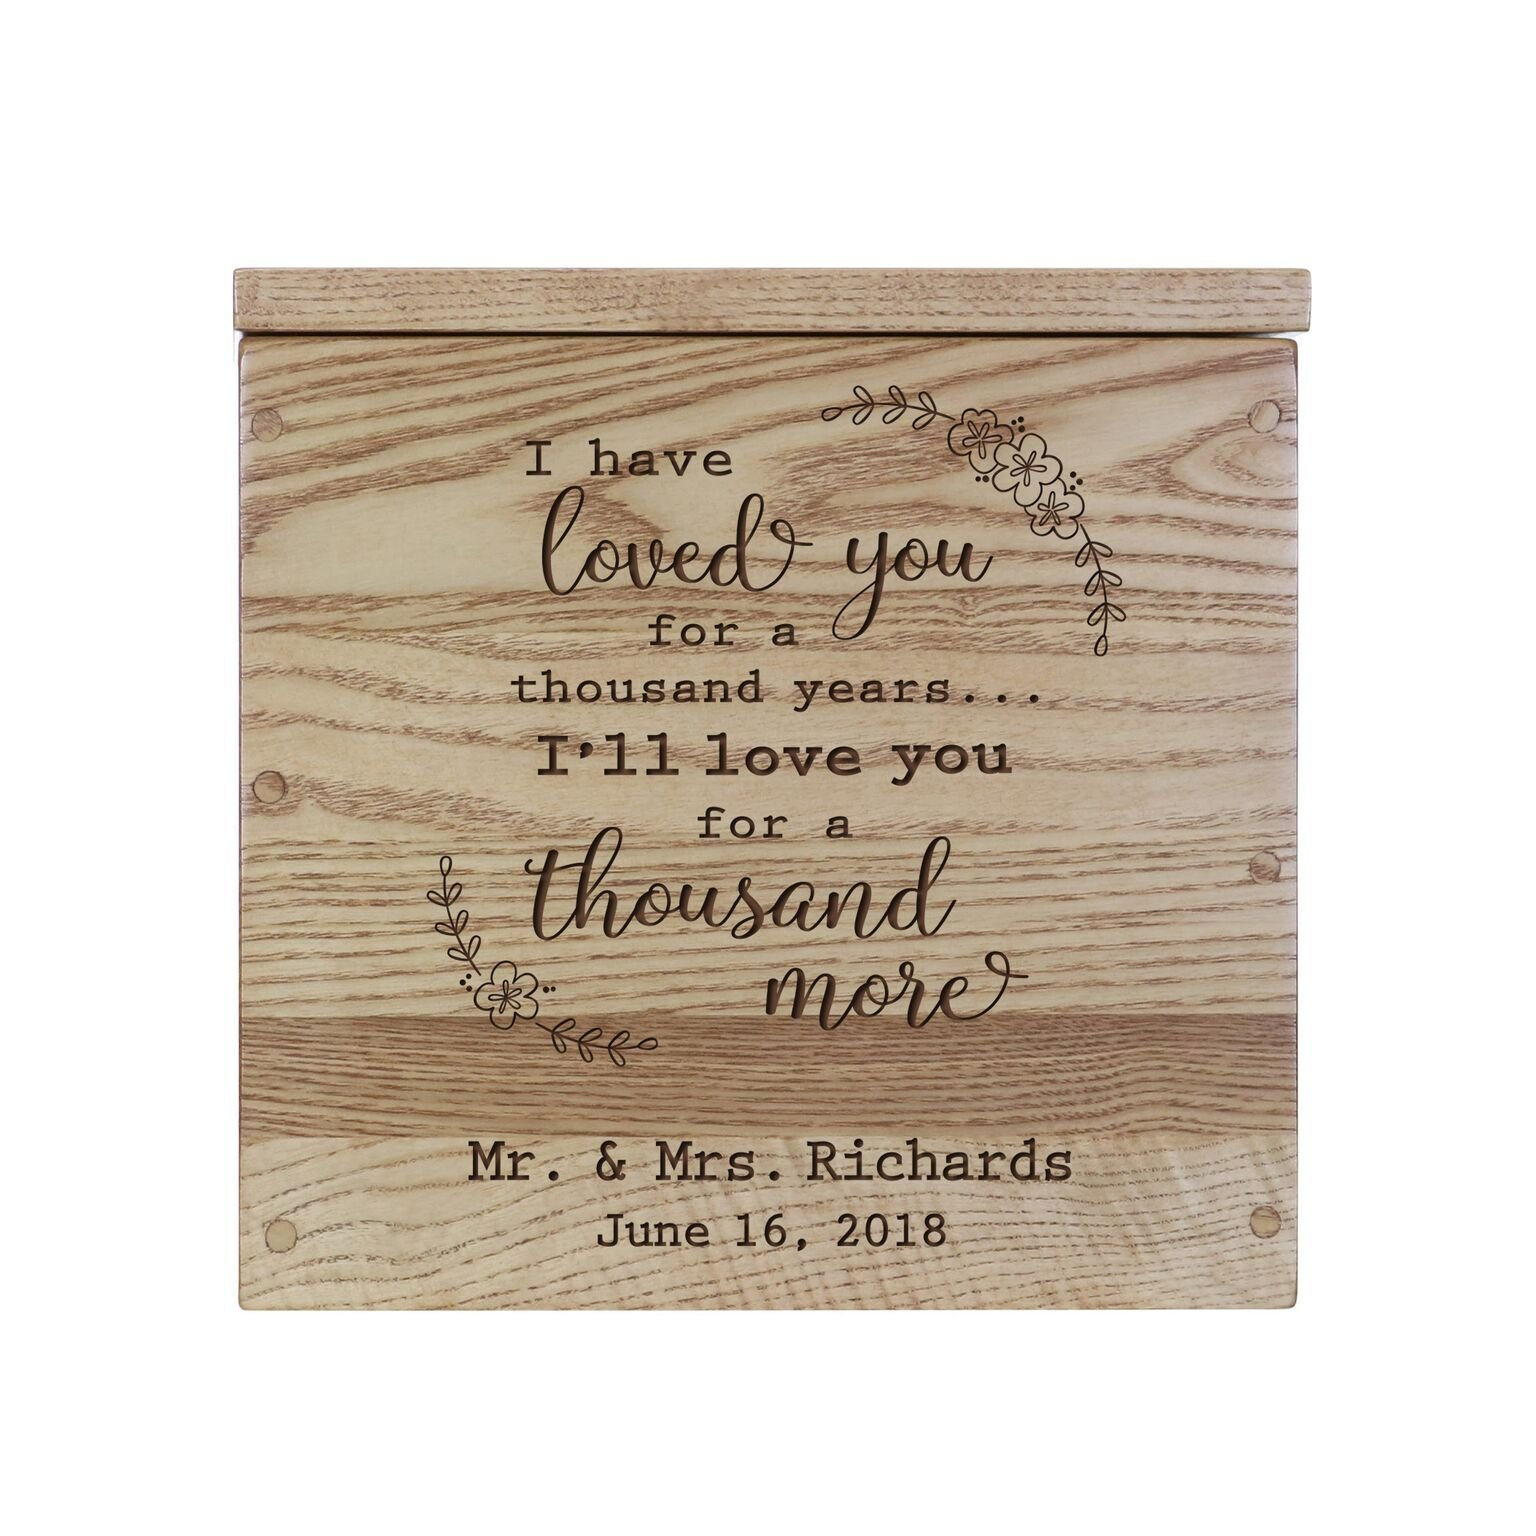 """LifeSong Milestones Personalized I Have Loved You Rustic Wooden Wedding Card Box Custom Card Holder with Lift Top for Newlyweds Couples Reception 11.5"""" L x 12.25"""" W (Hickory)"""